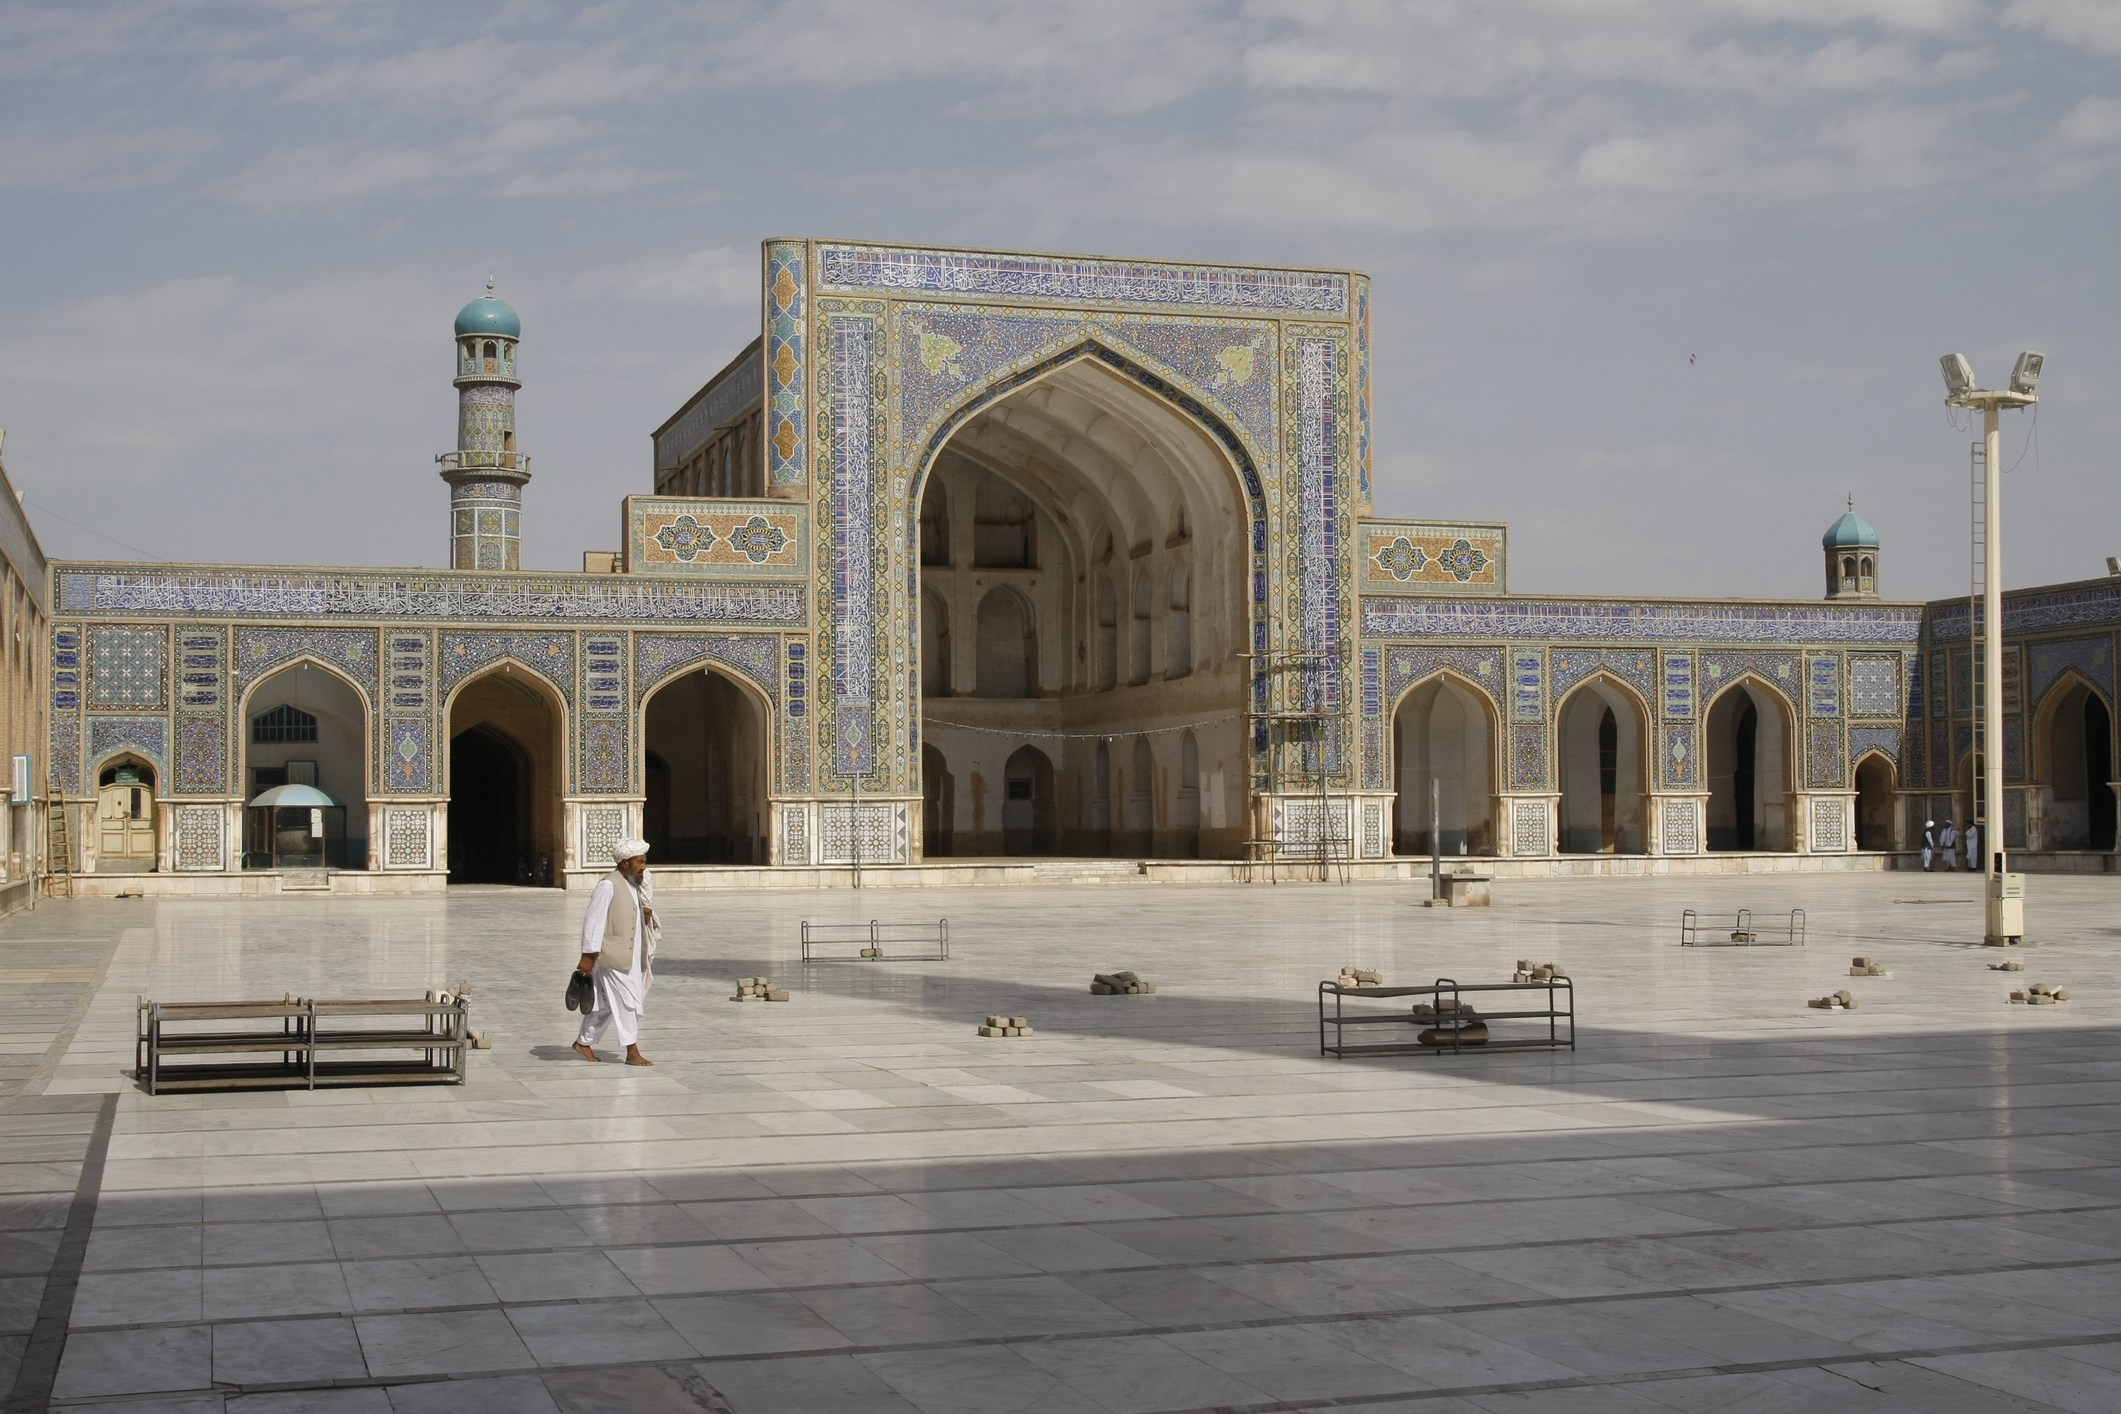 Scene from the Friday Mosque of Herat Afghanistan